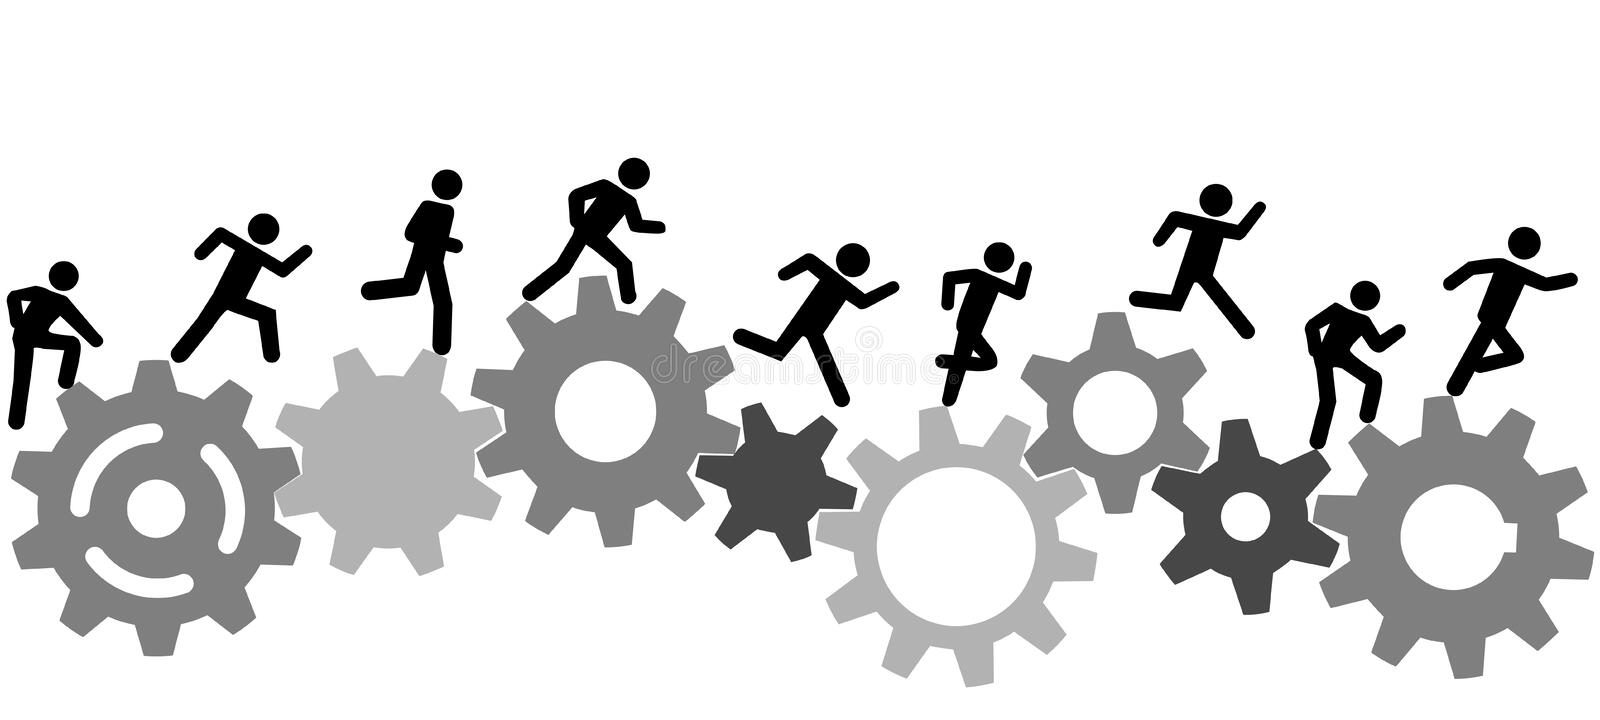 Symbol people run a race on industry gears vector illustration